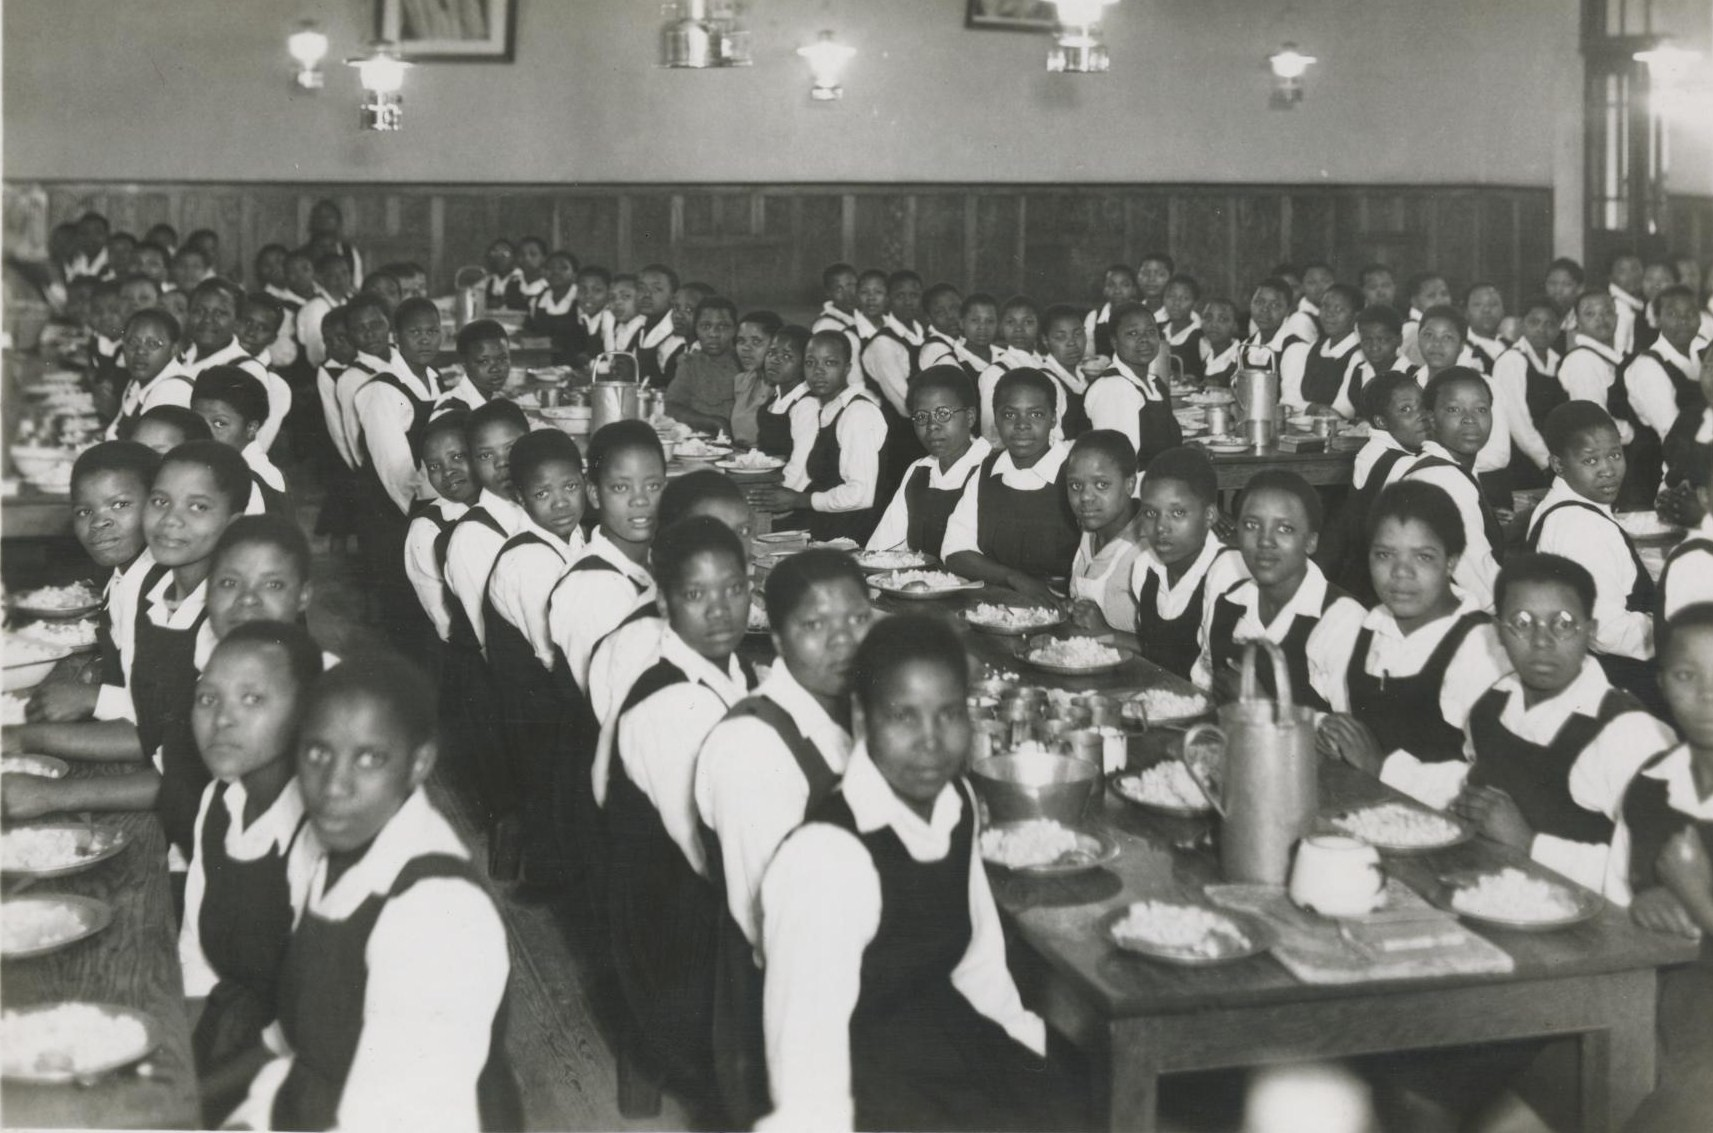 """Meal Time in the Girls' Hostel,"" South Africa (Image source: http://murraymcgregor.wordpress.com/chapter-15-the-chaos-of-%E2%80%9Cbantu%E2%80%9D-education/)"